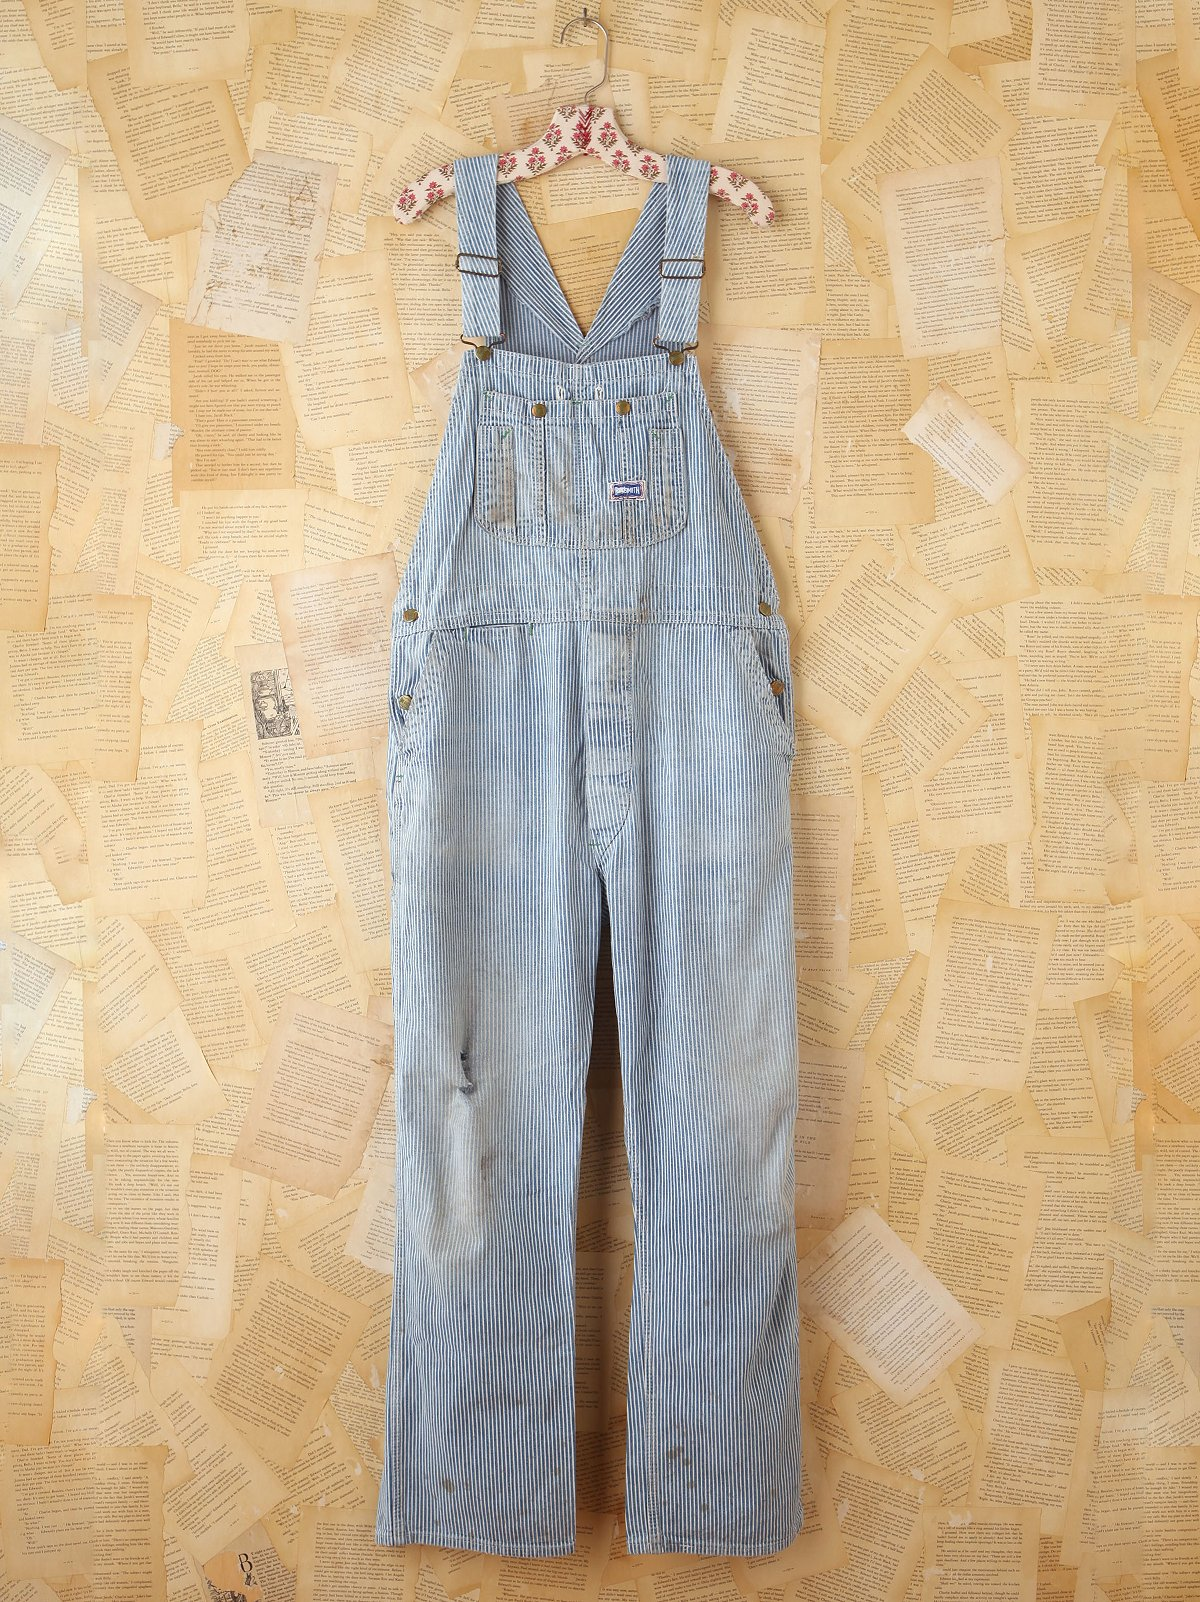 Vintage Bob Smith Striped Denim Overalls